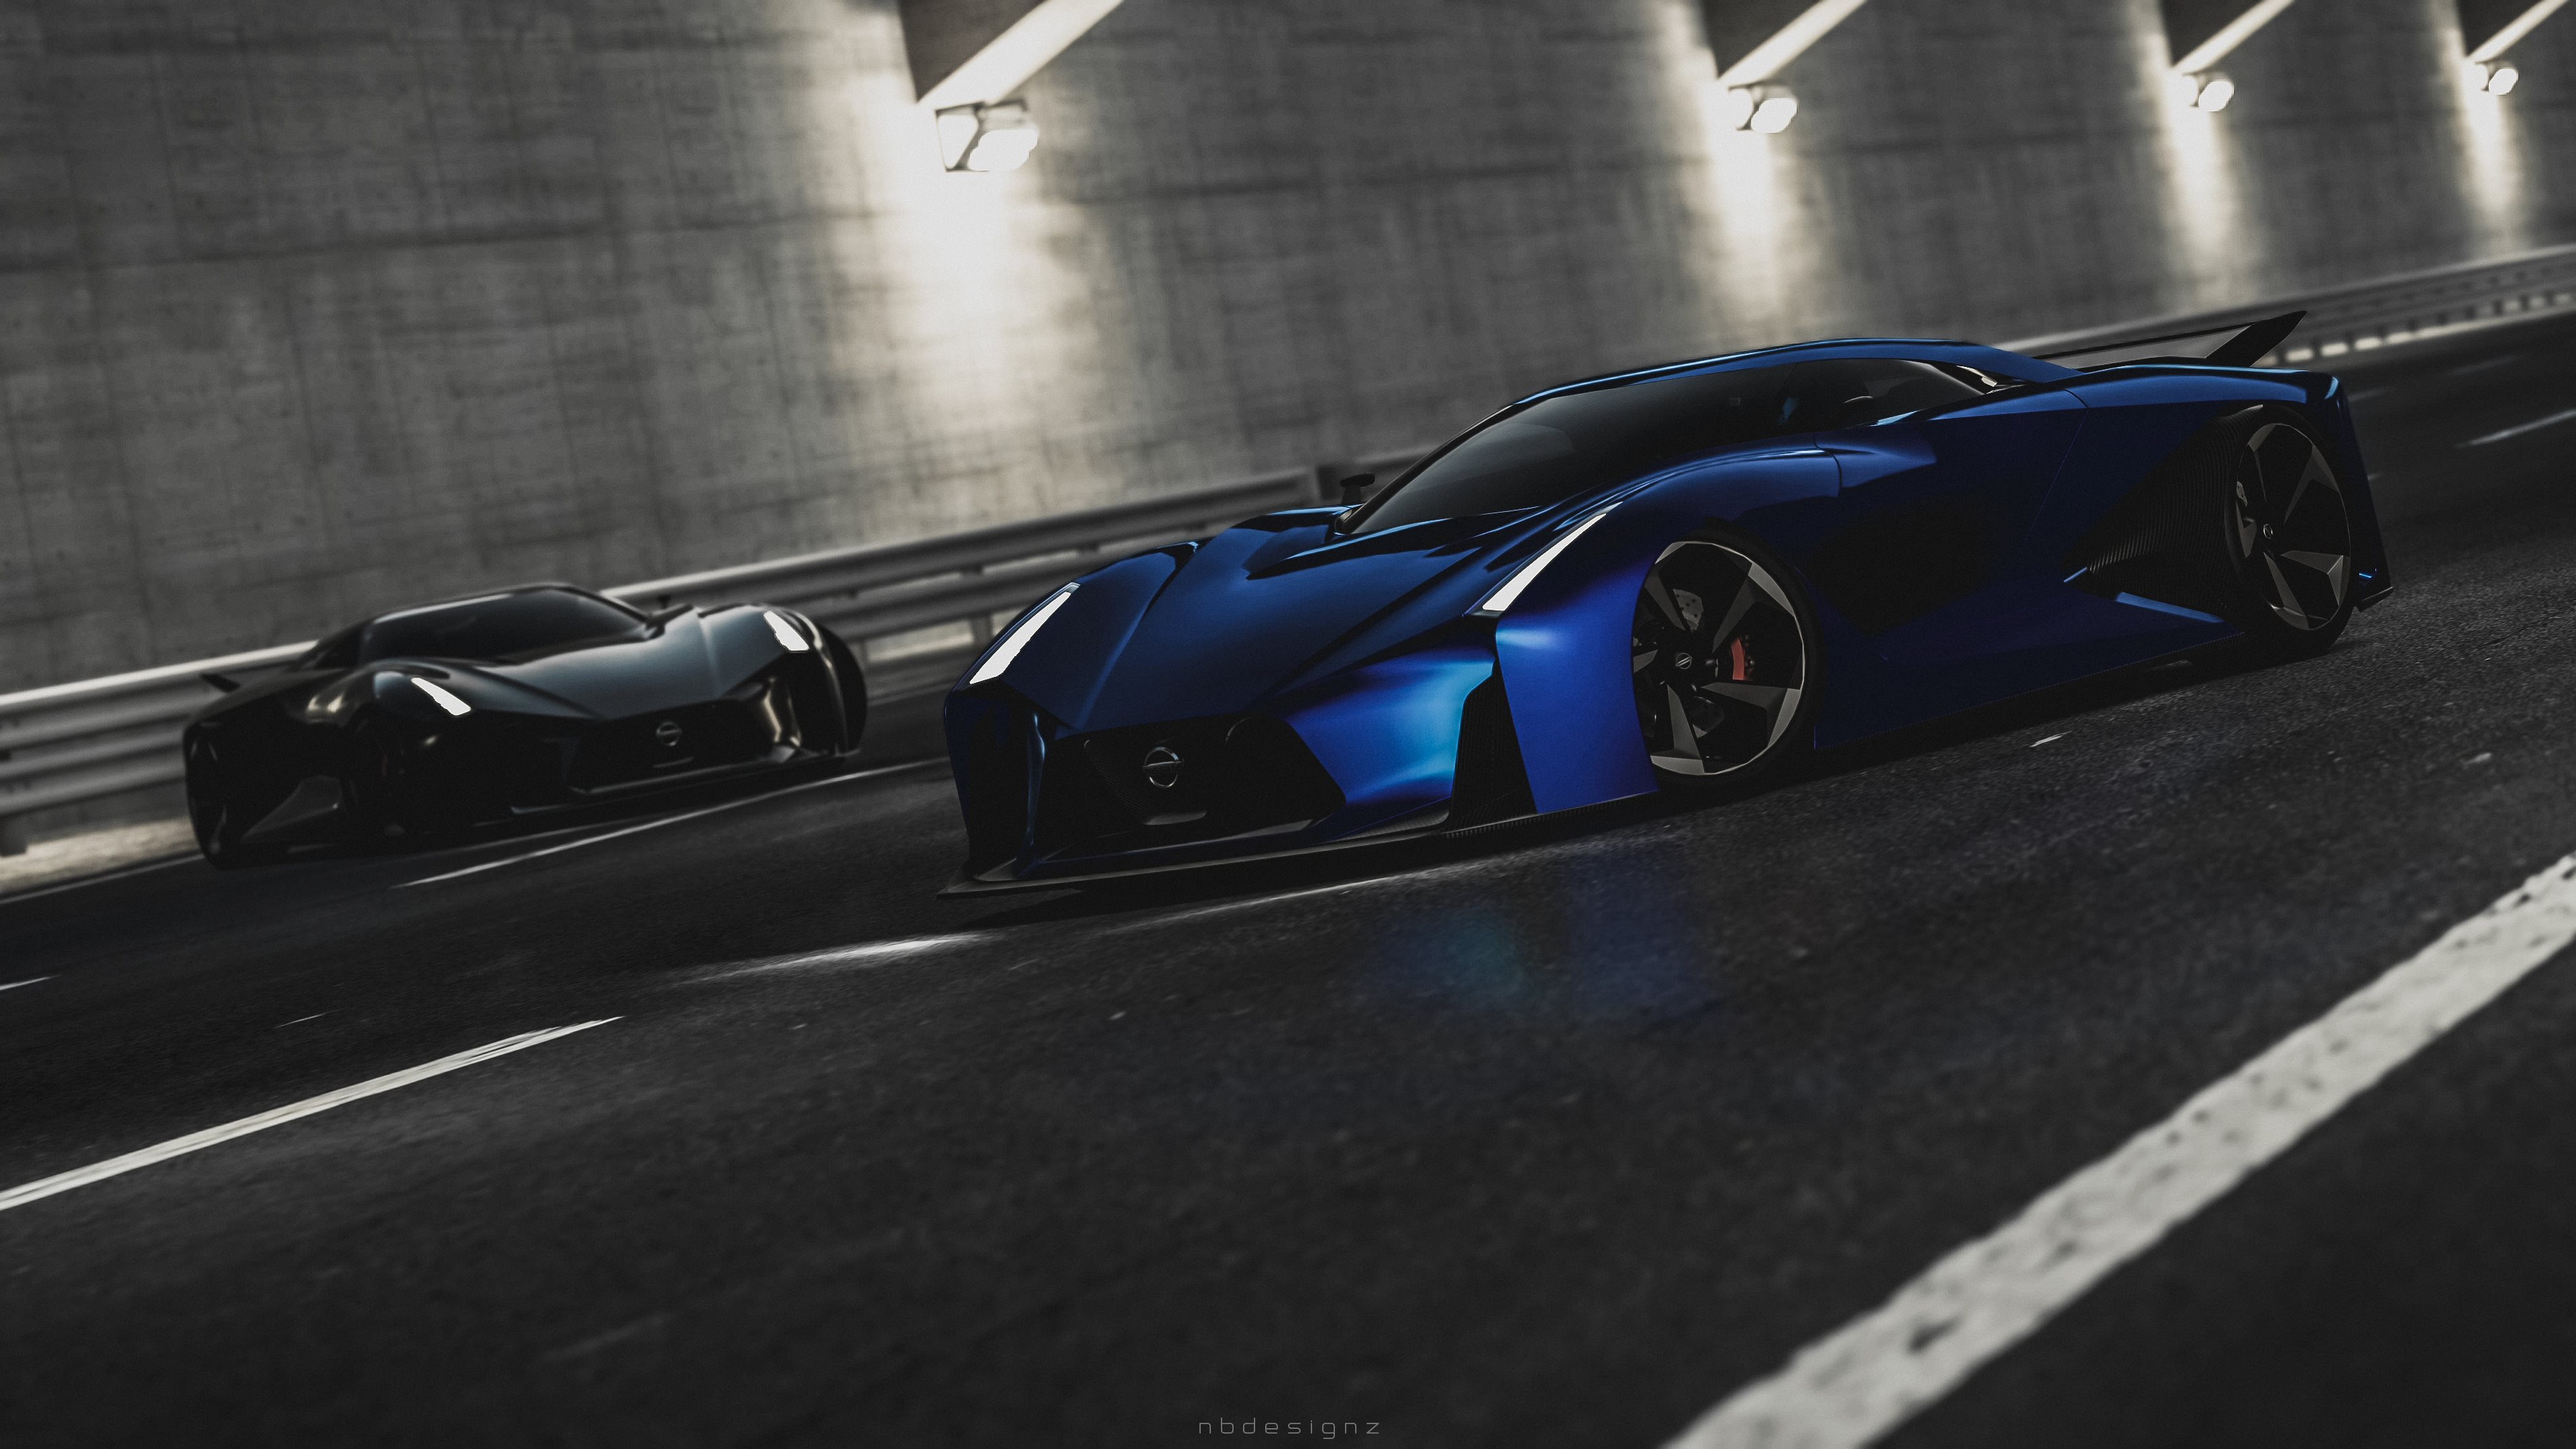 nissan 2020 vision gran turismo concept wallpapers in hd 4k and wide